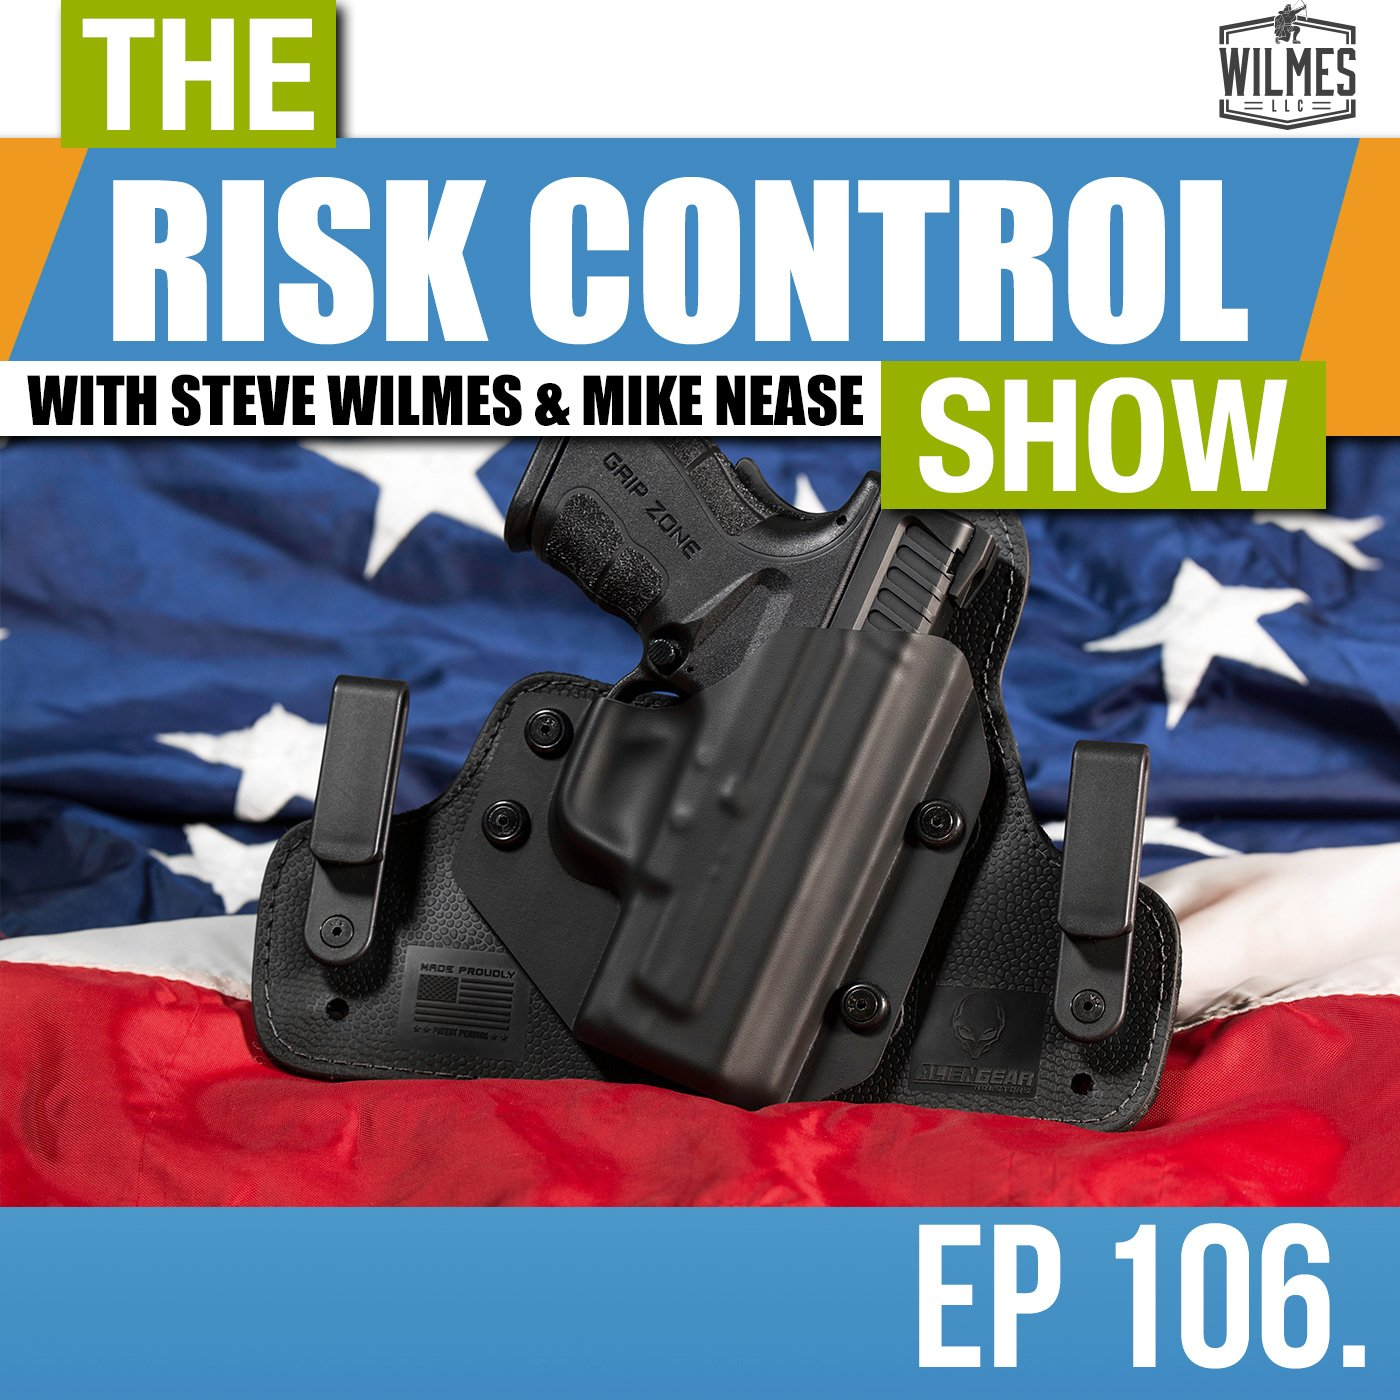 The Risk Control Show Ep 107. Should Teachers Have Guns?